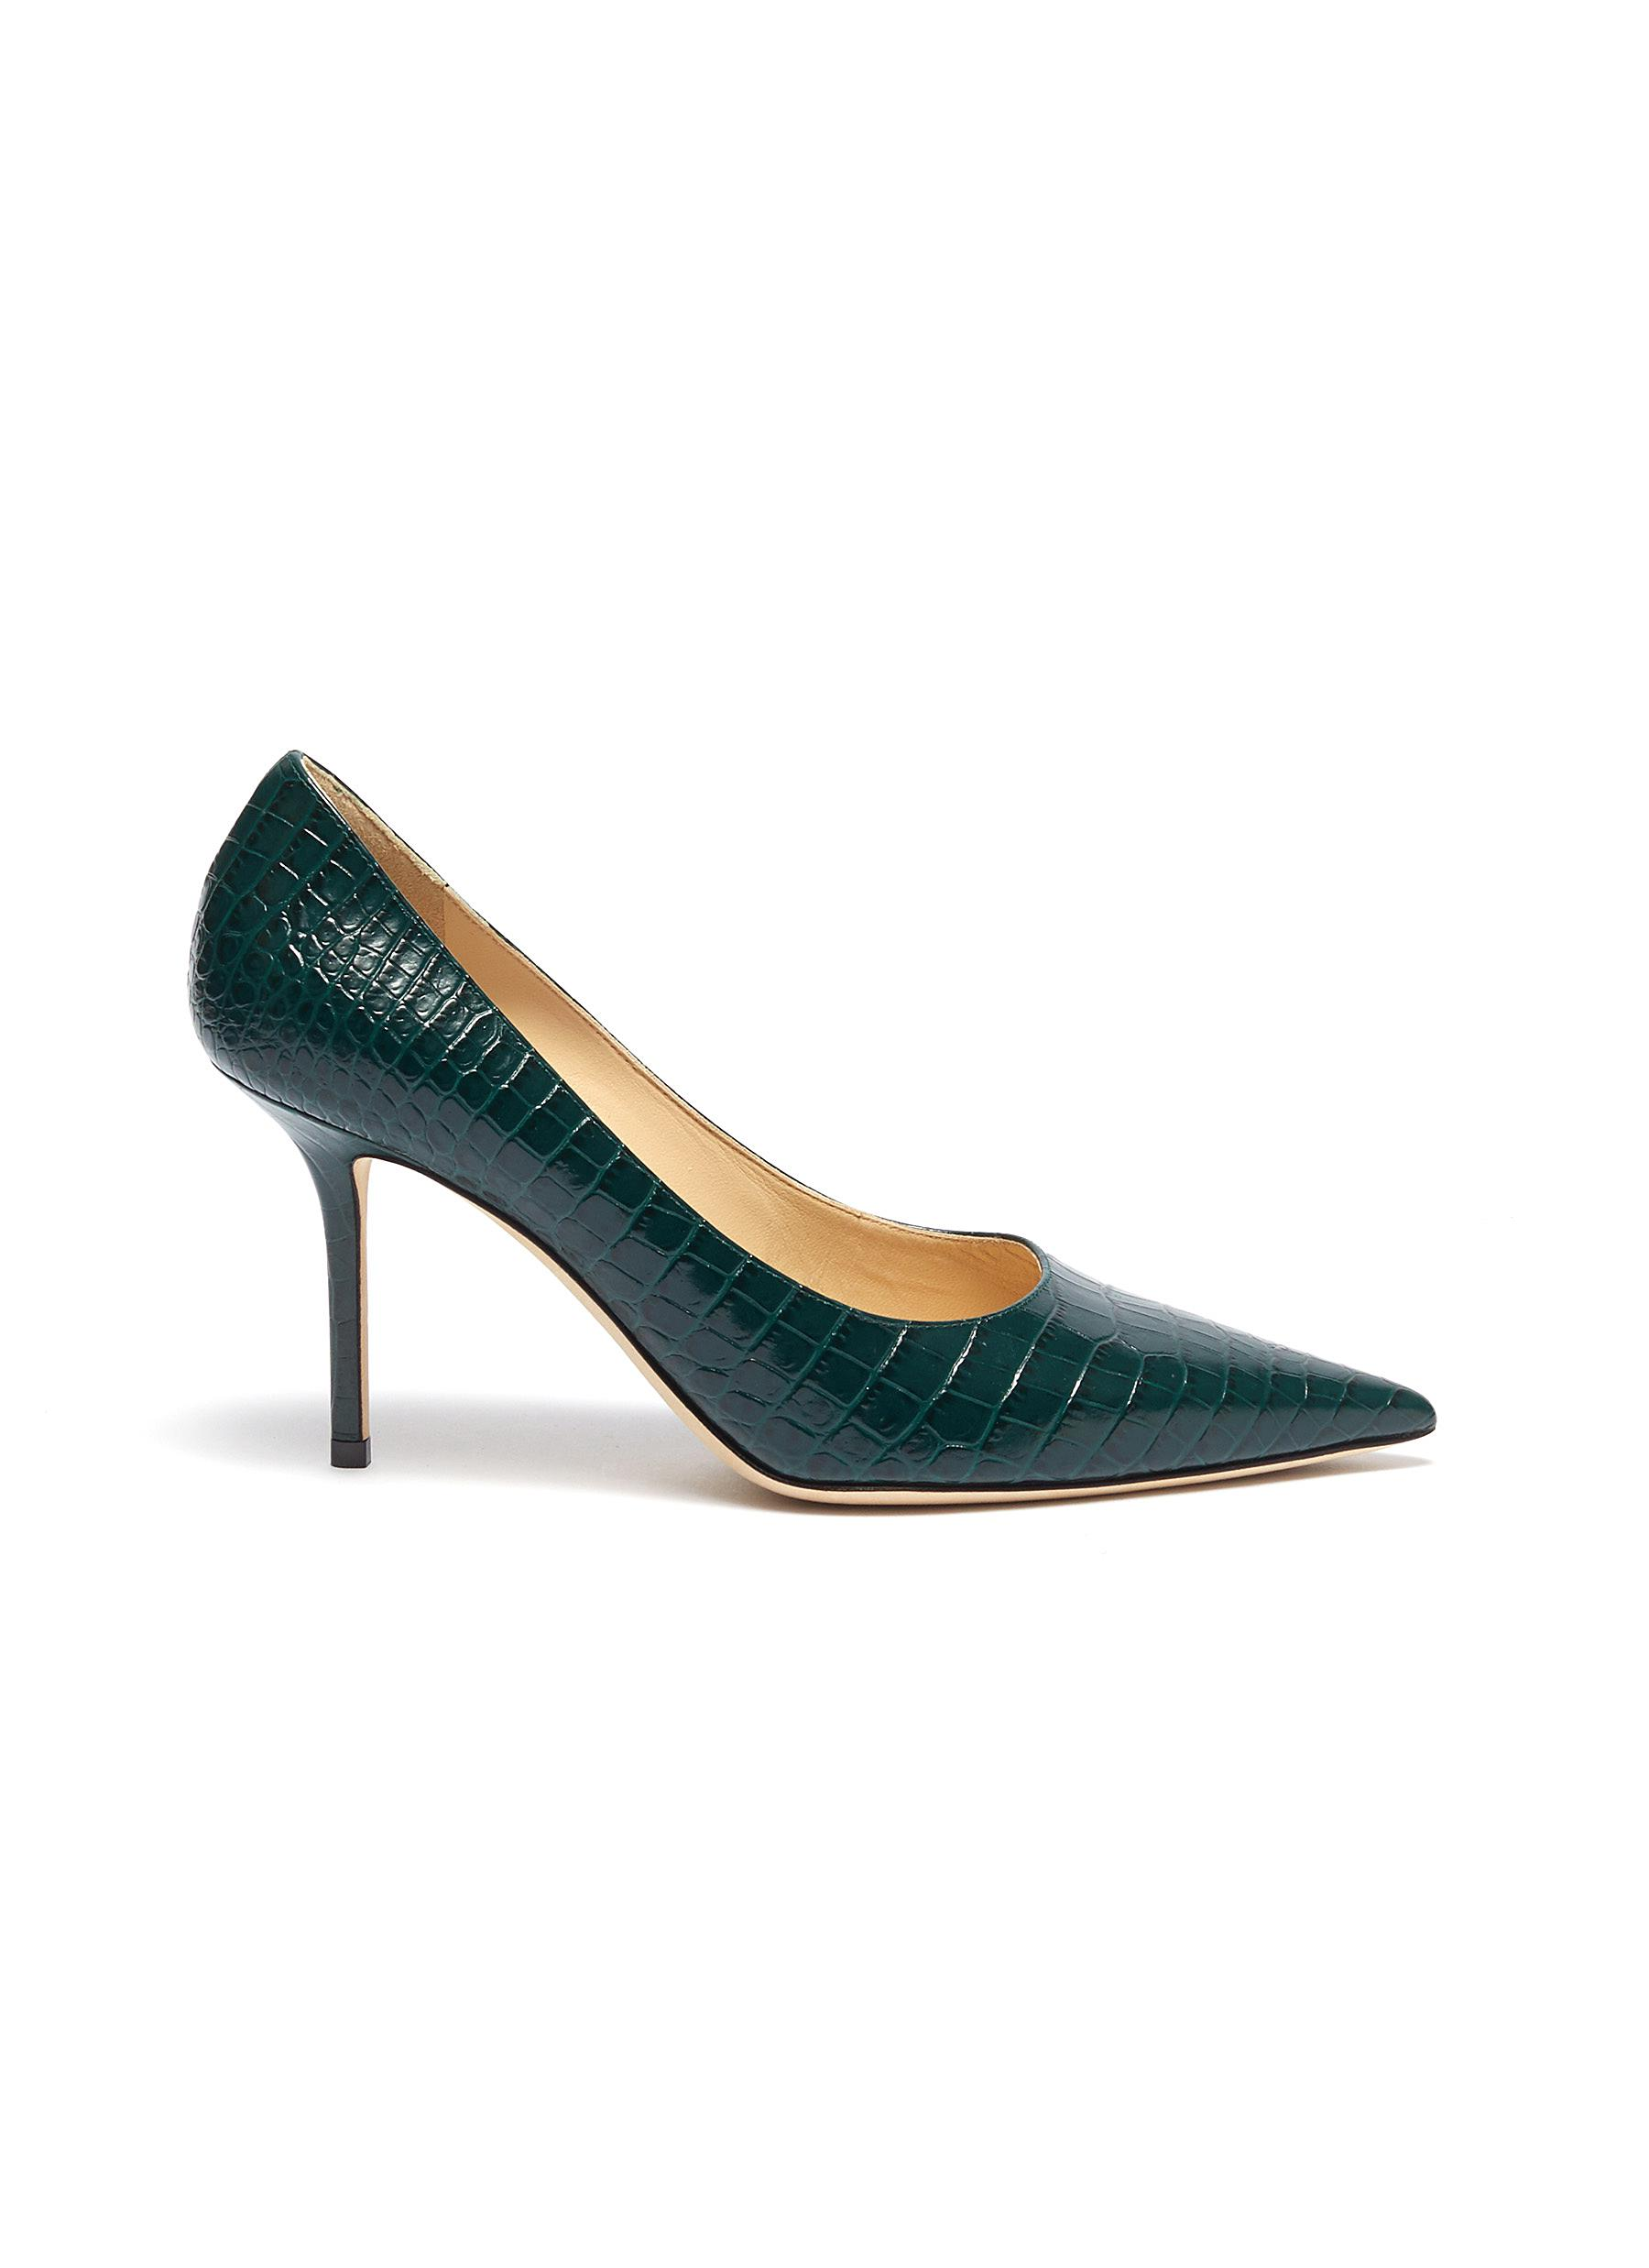 Love 85 croc embossed leather pumps by Jimmy Choo